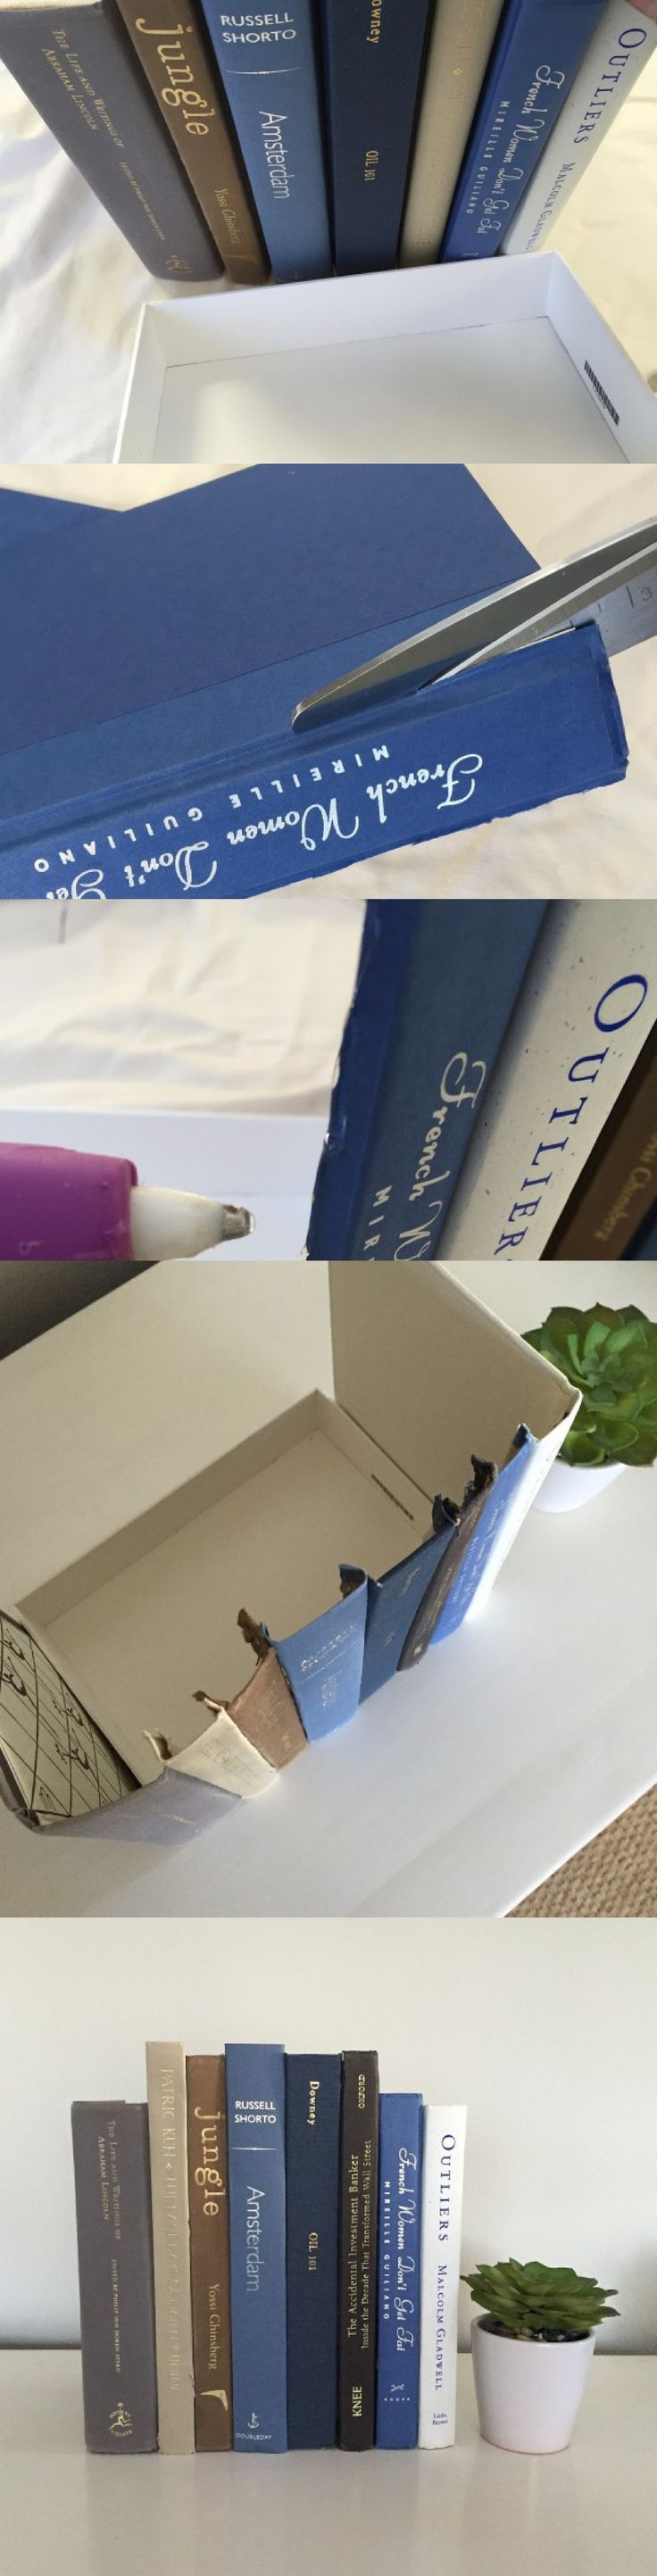 A Clever Way to Hide Clutter: Behind Fake Books!